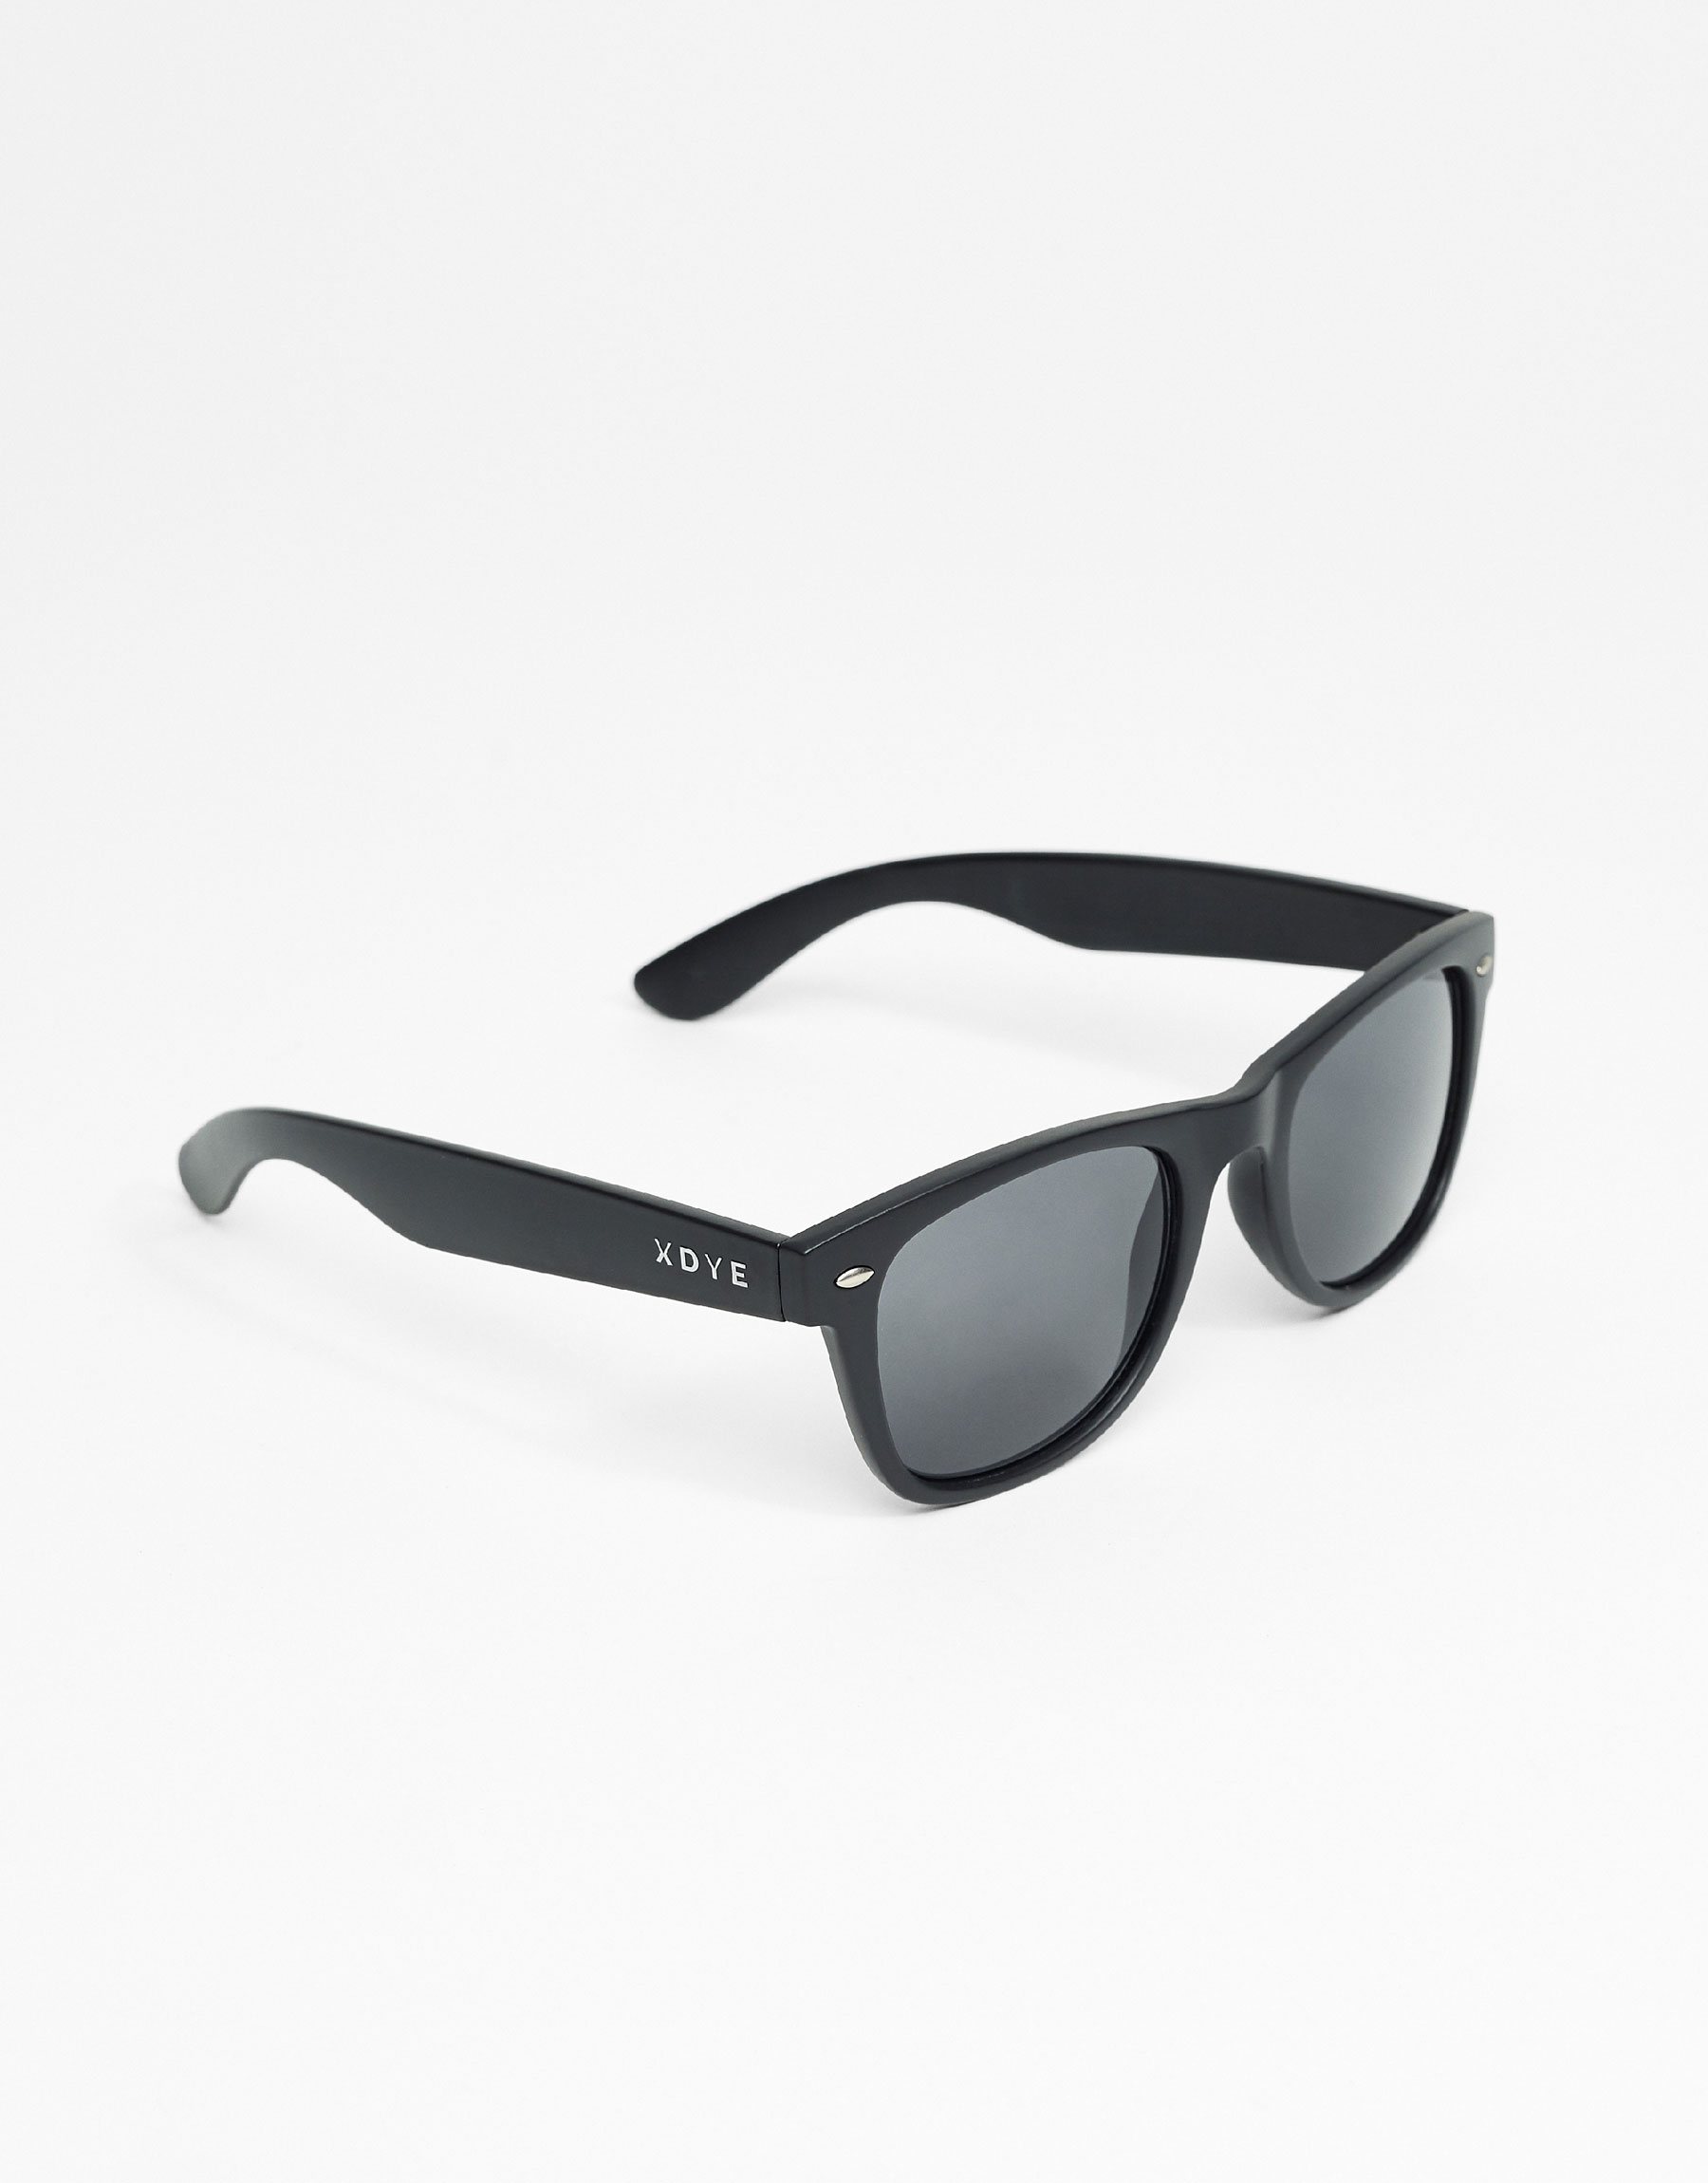 XDYE Sunglasses - Total Black